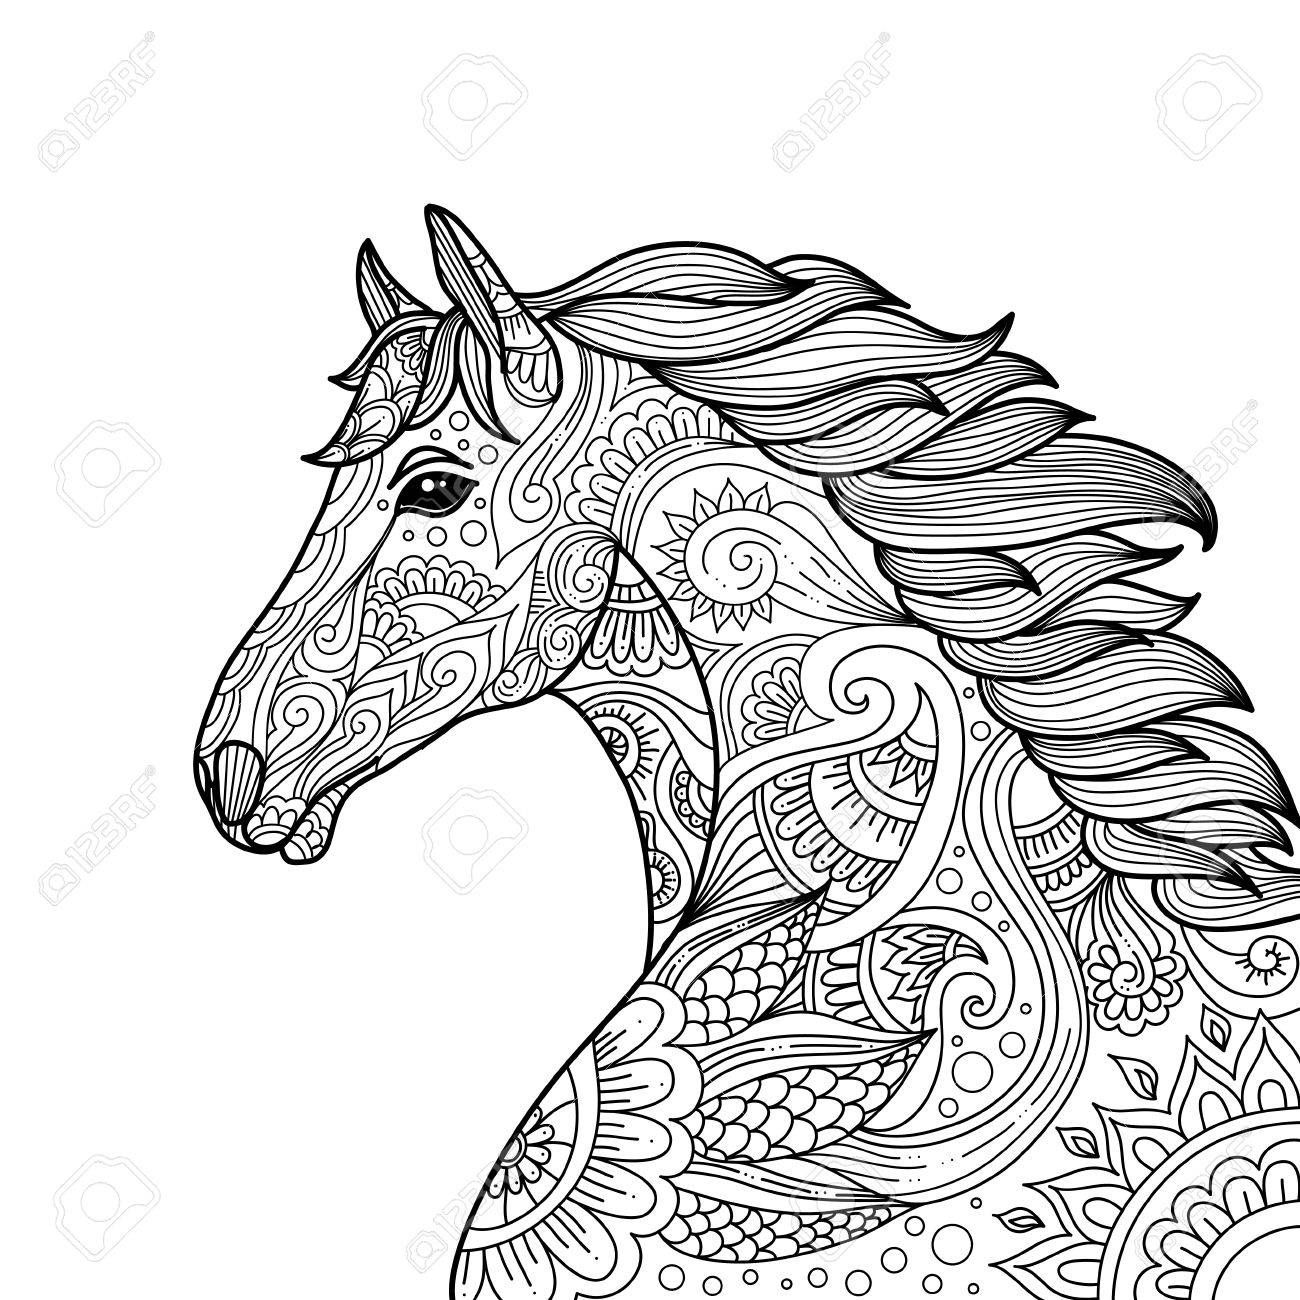 Stylized Hand Drawn Head Horse Coloring Page For Adults Vector Best Of Pages